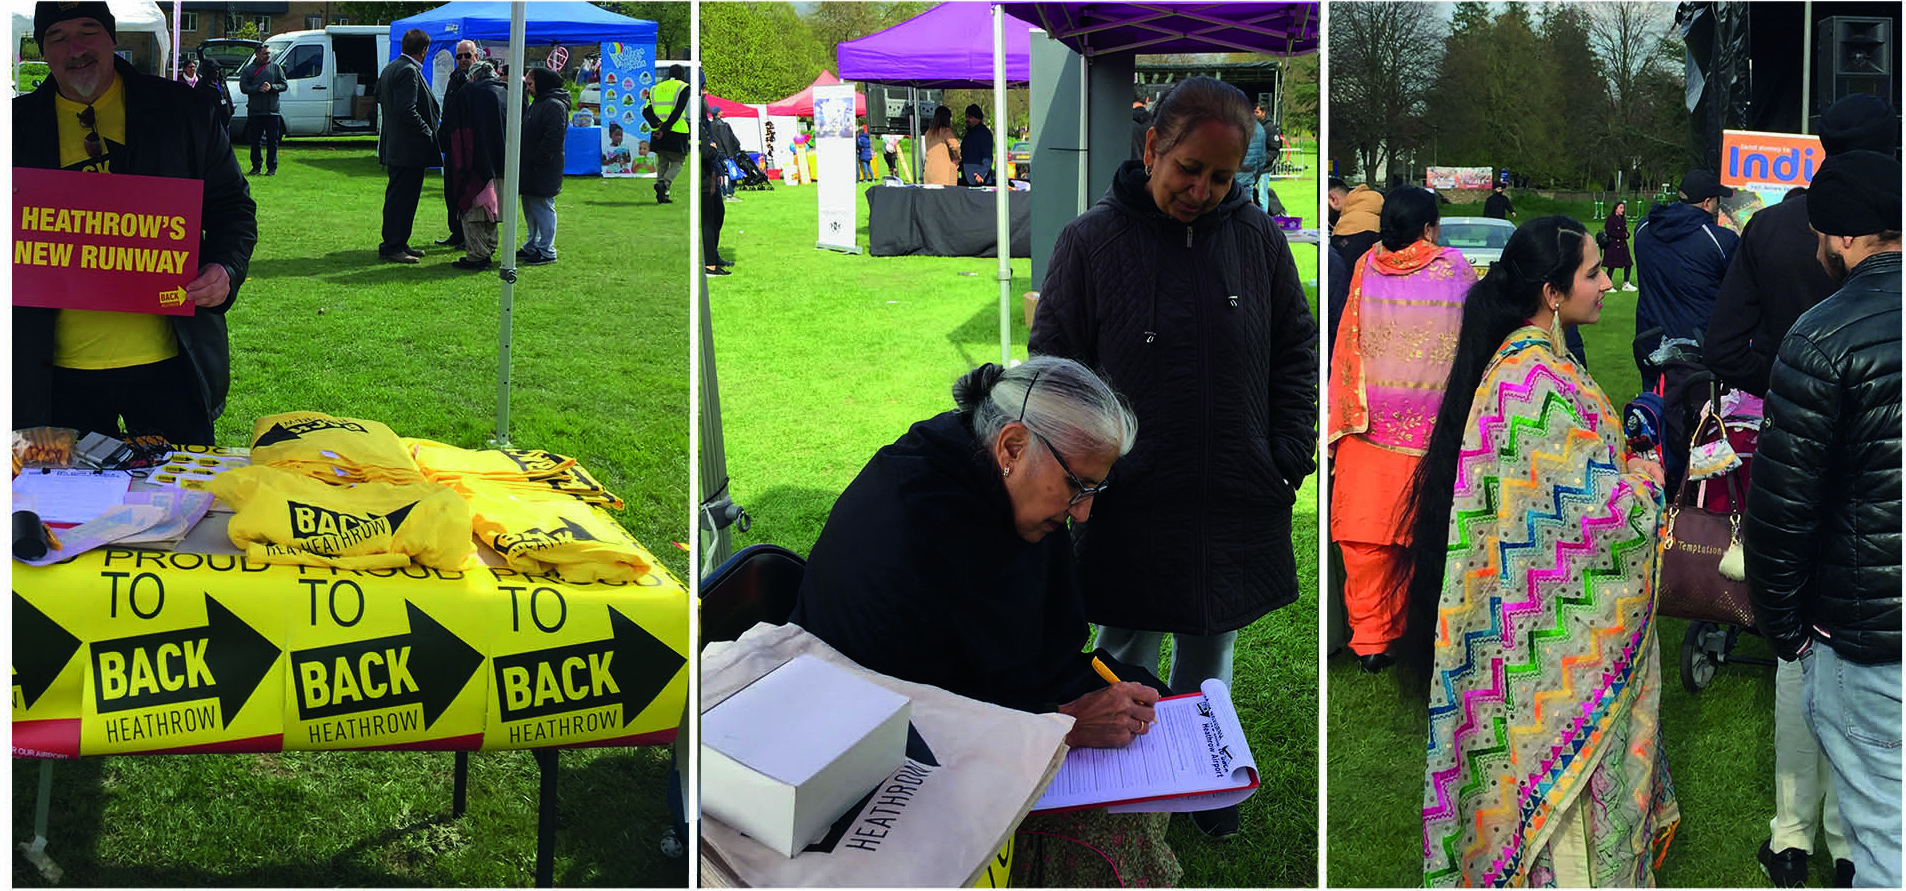 Vaisahki Southall 2019 in Norwood Green park